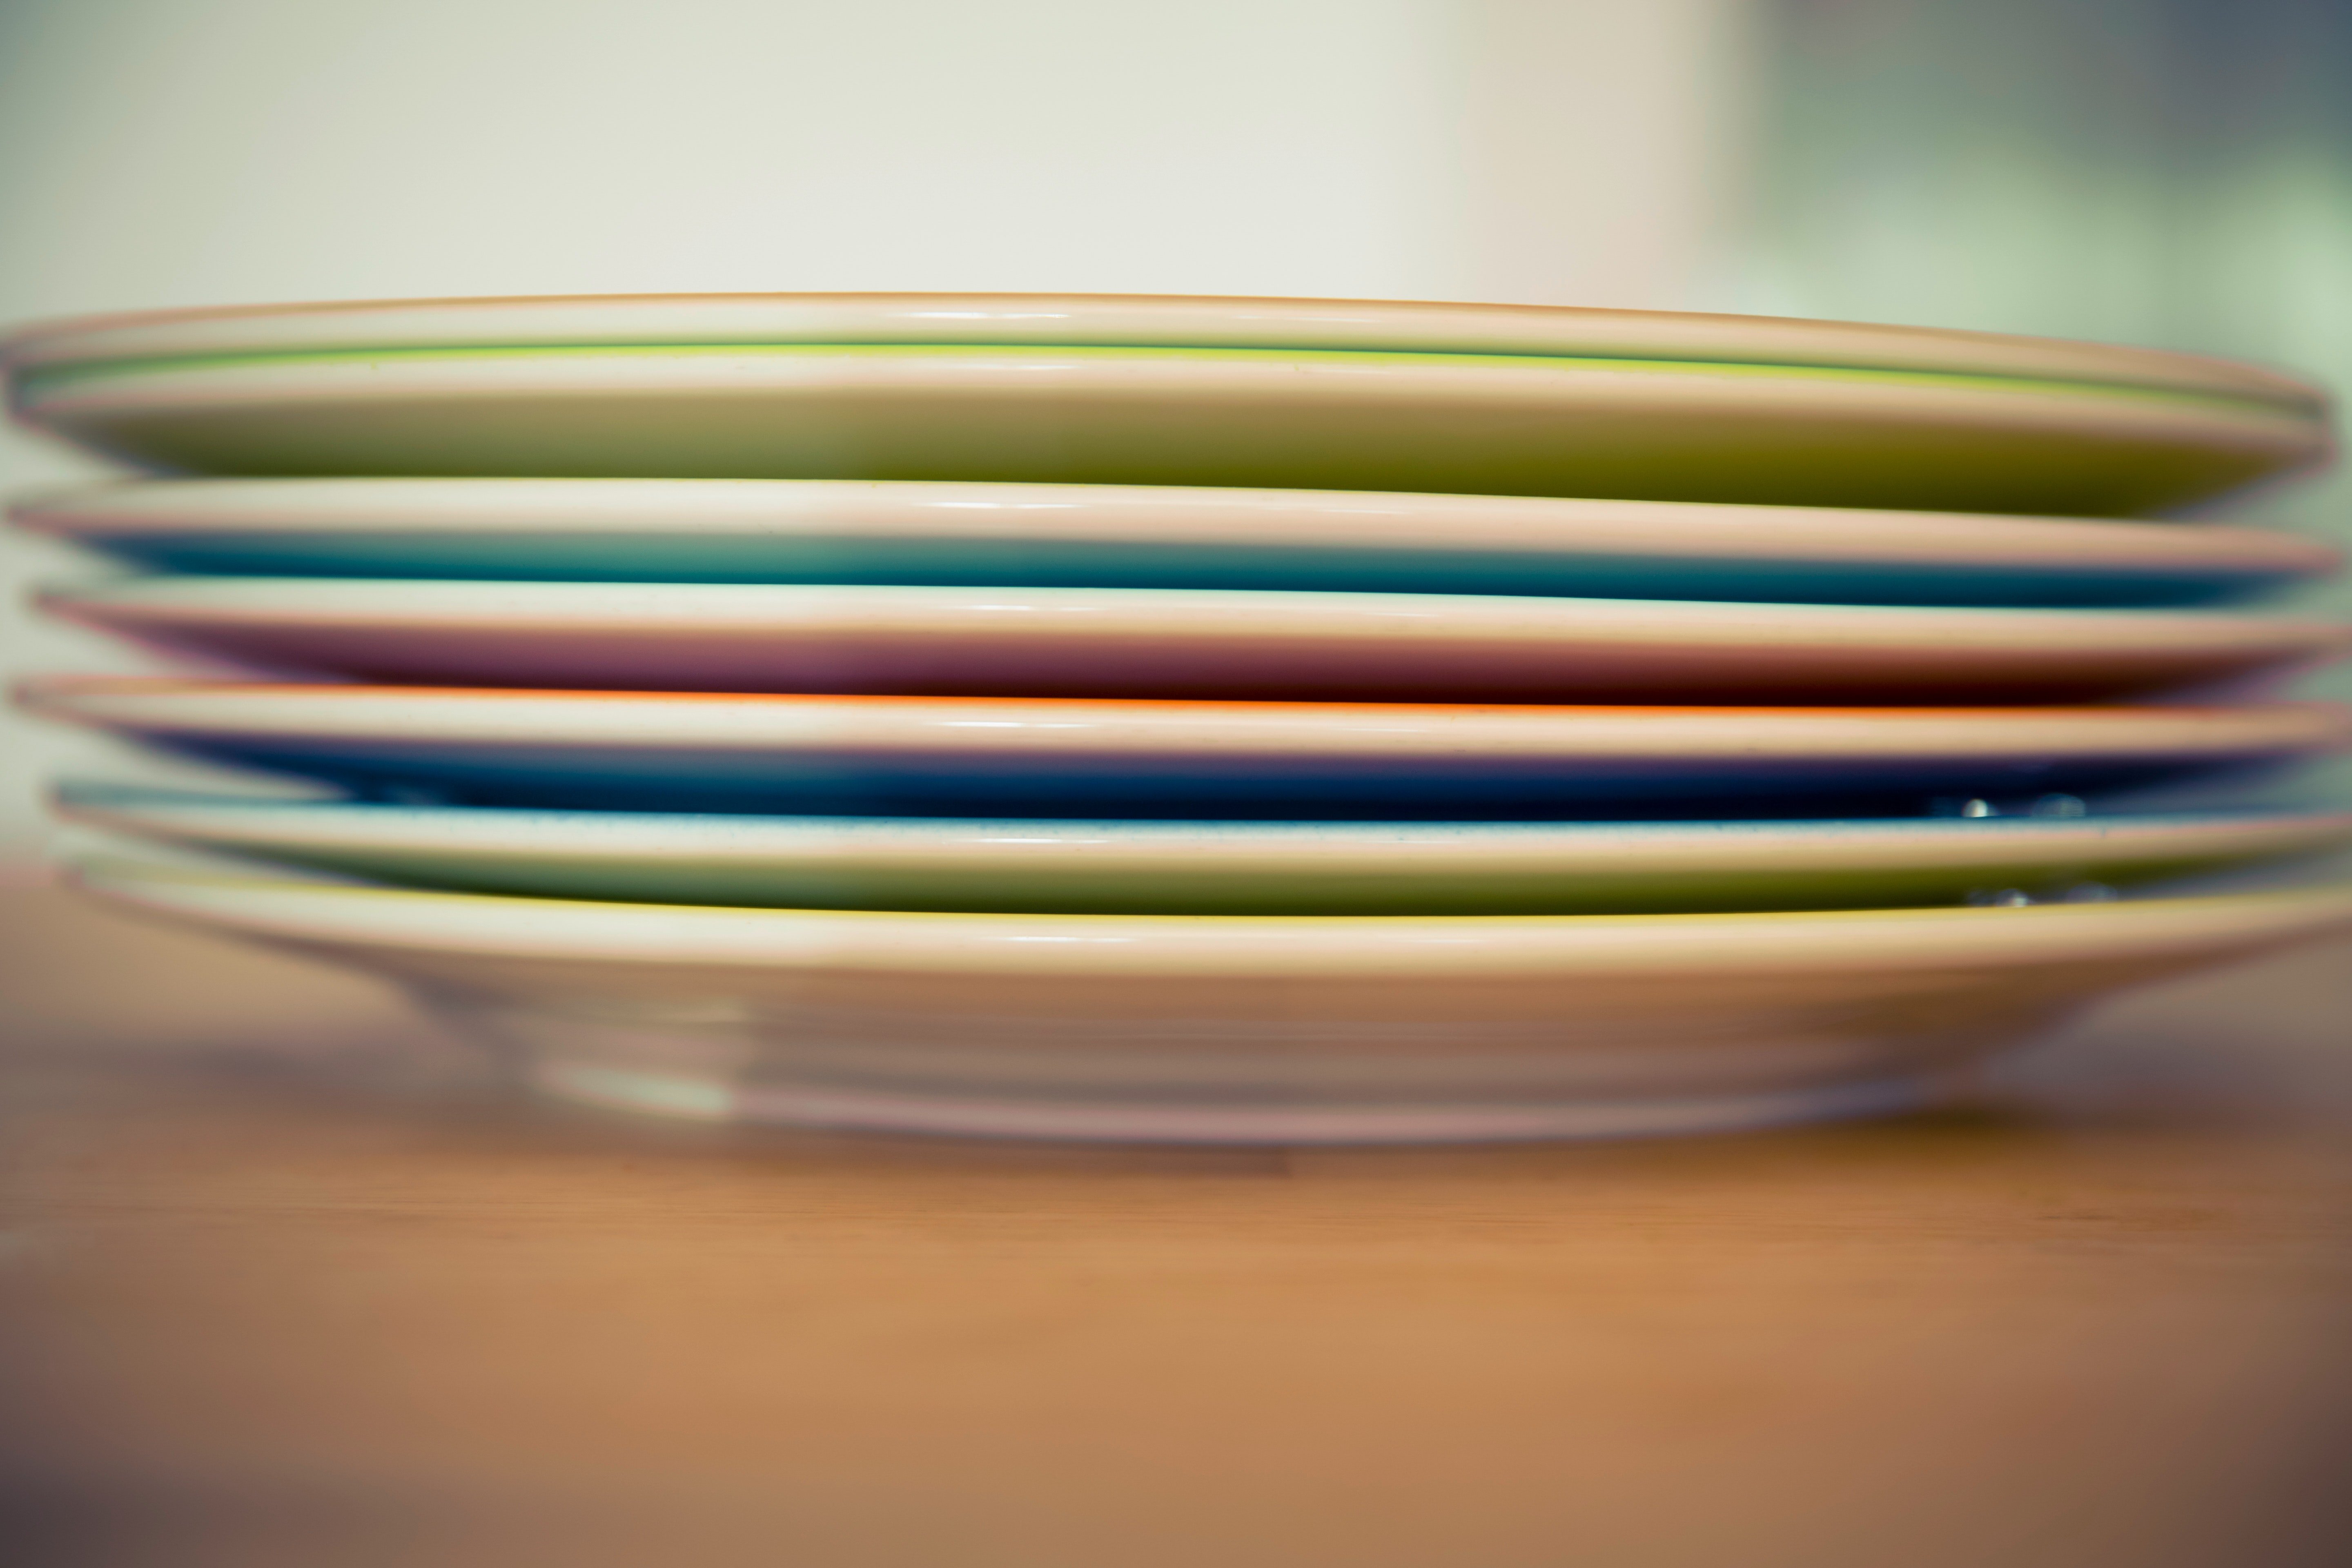 depth-of-field-plates-stack-95218